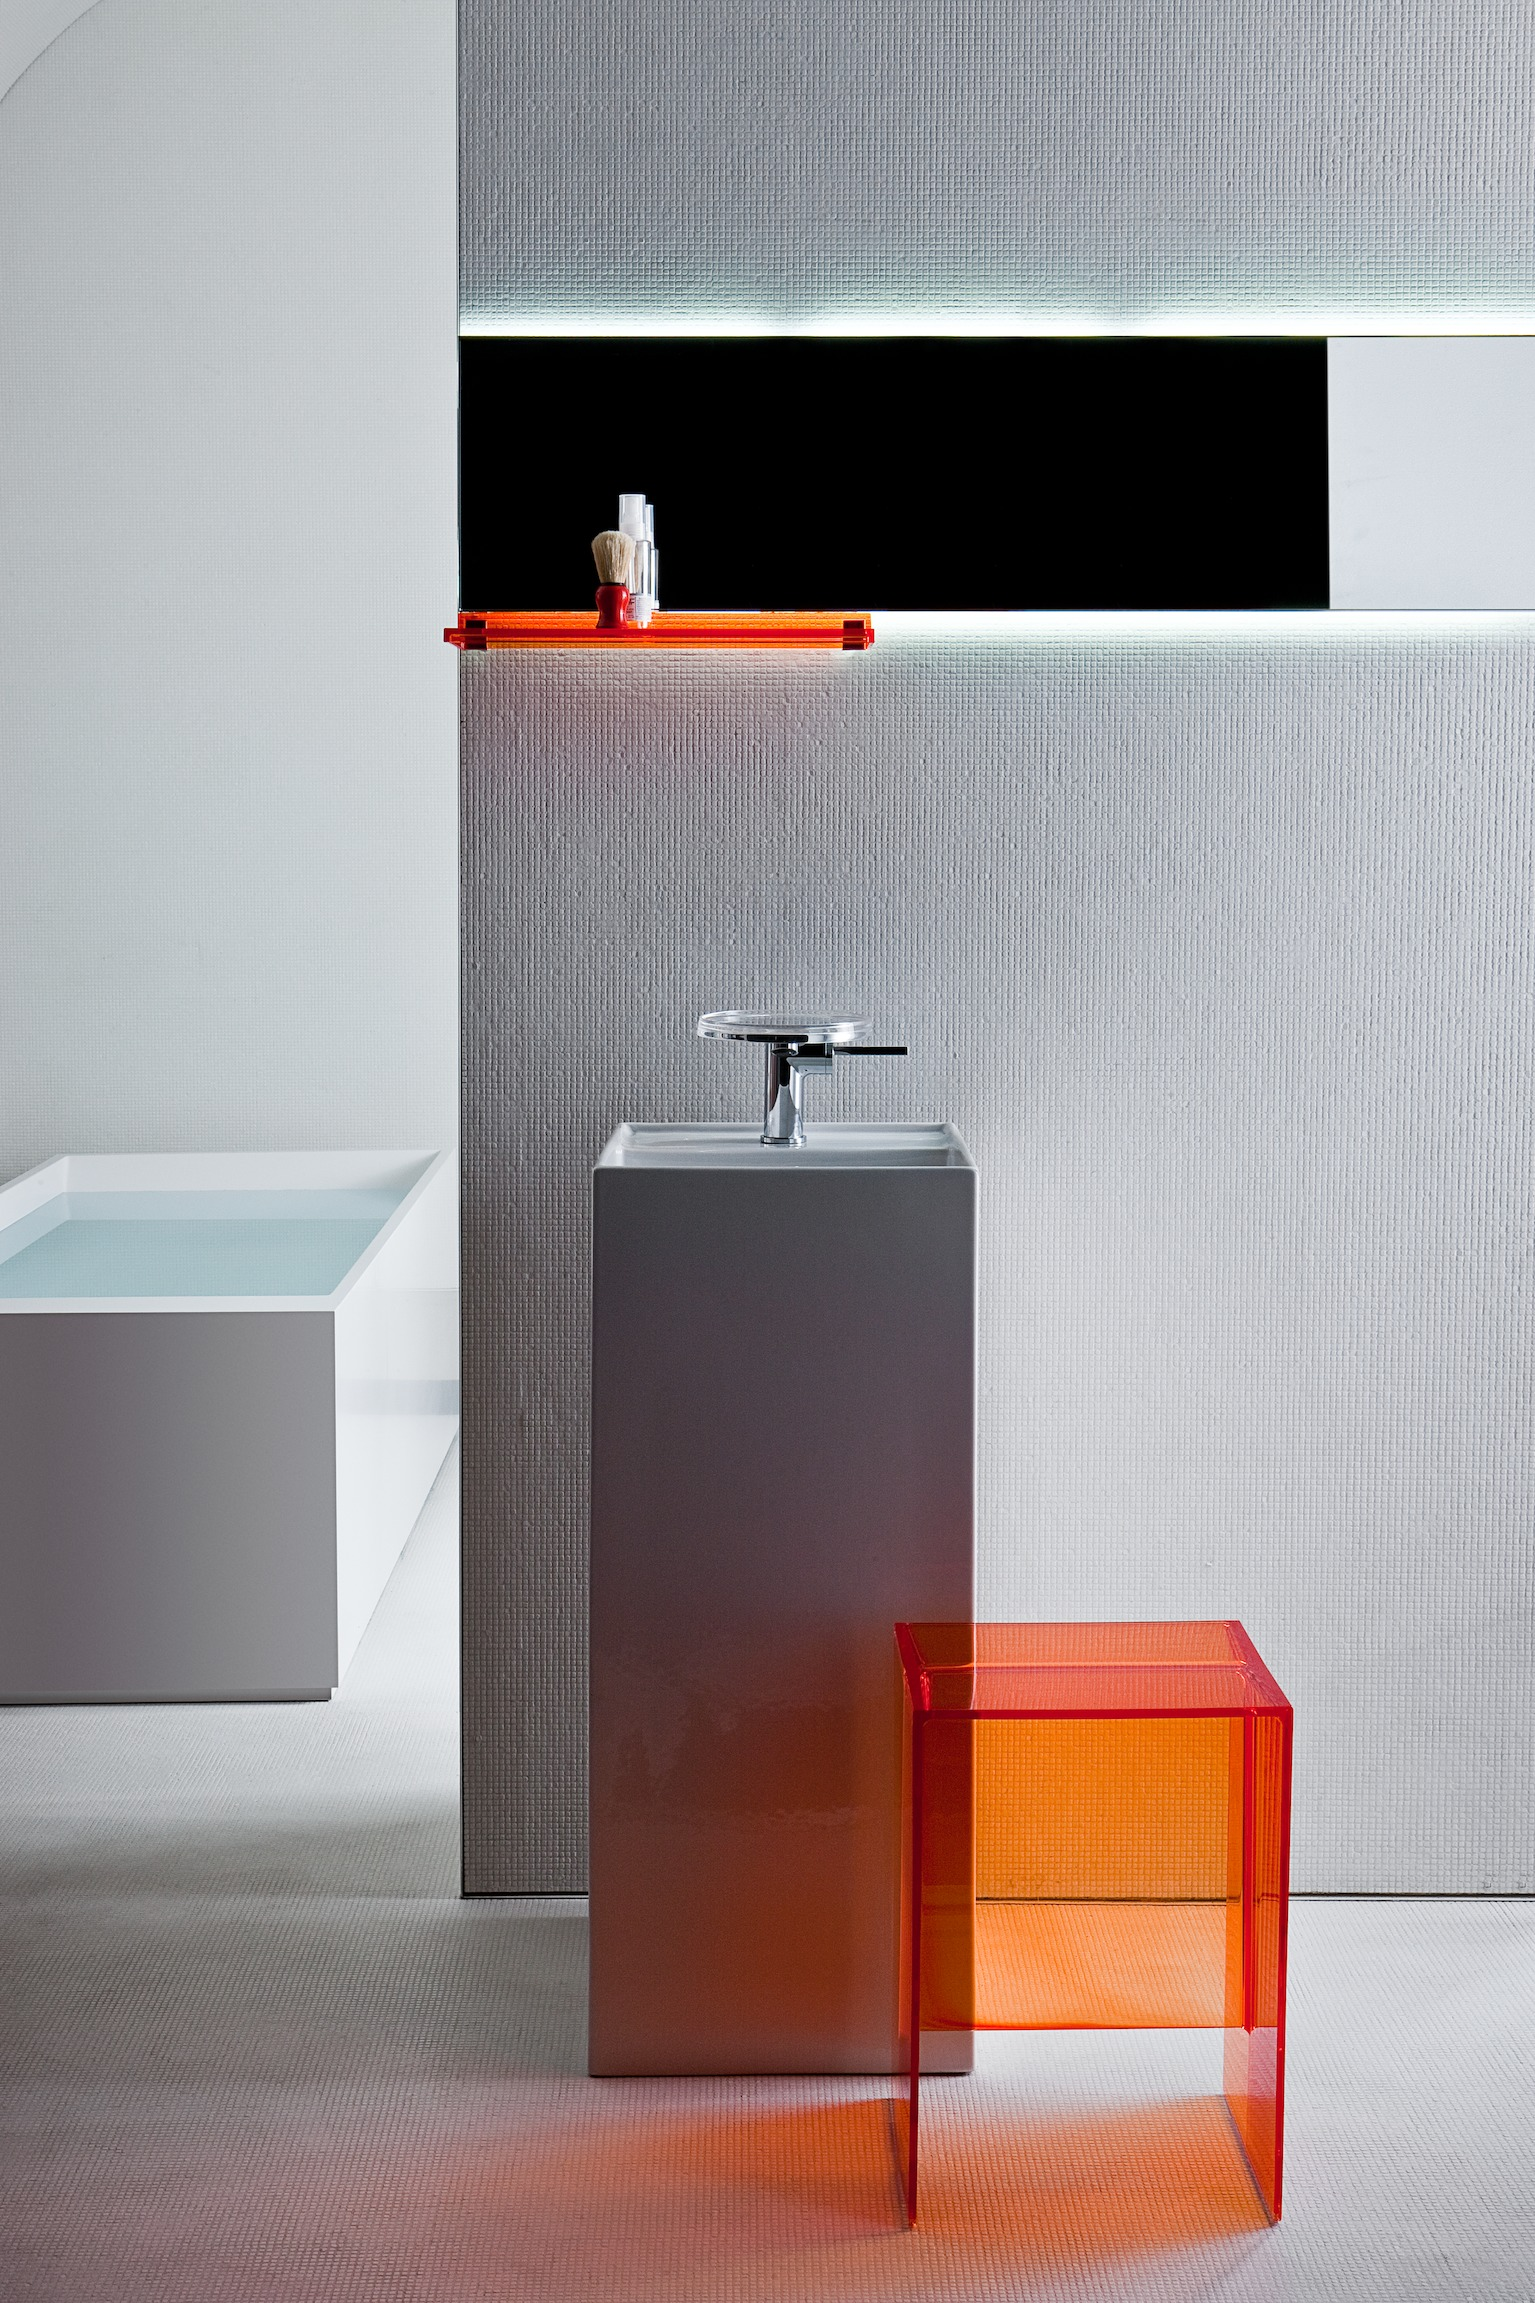 Kartell By Laufen Saphirkeramik.Kartell By Laufen The Perfect Emotion In The Bathroom